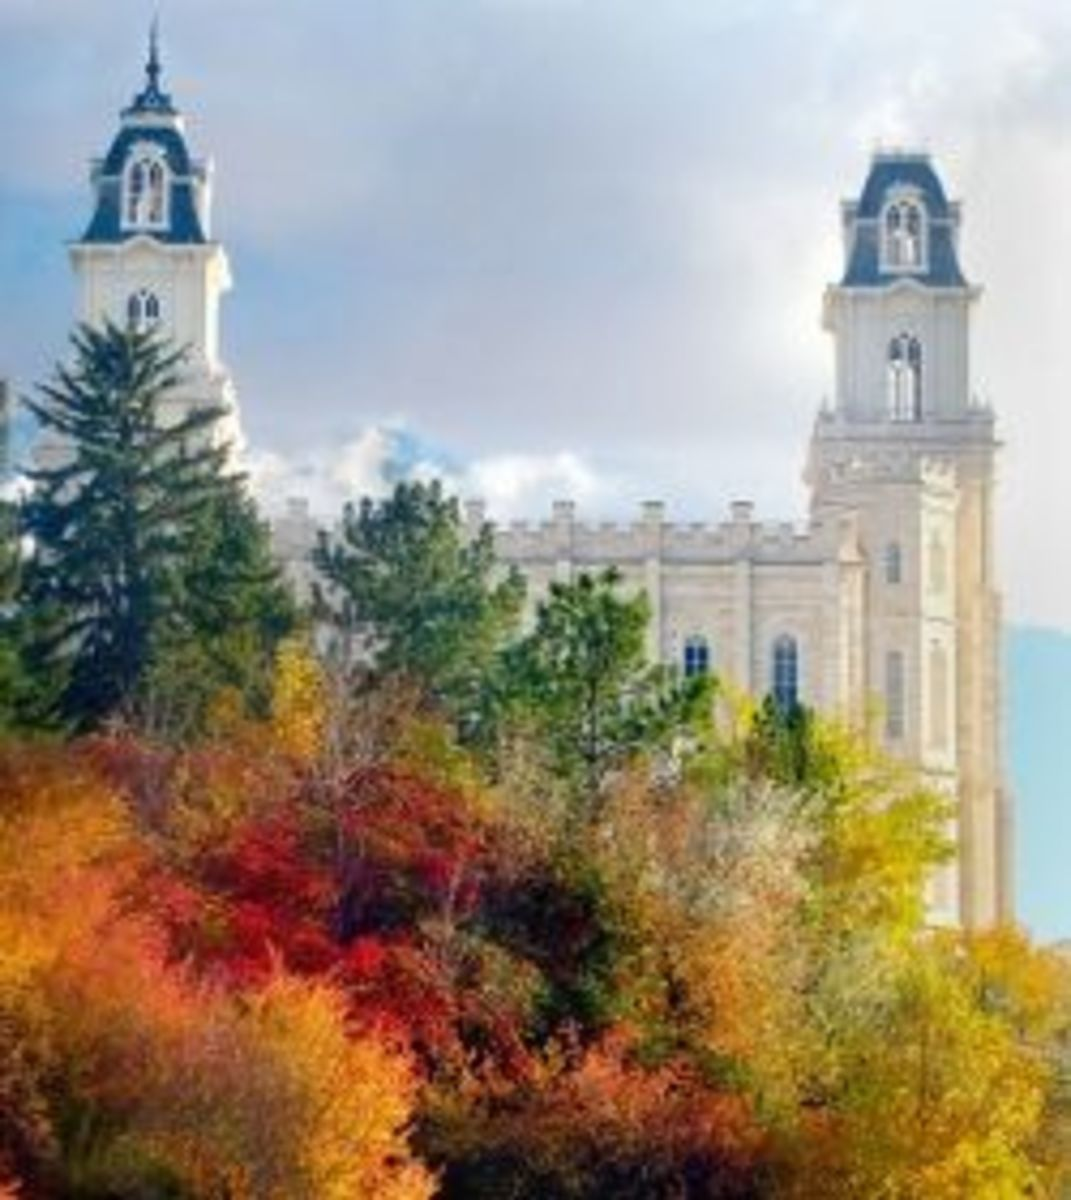 The Mormon Temple in Manti, Utah is one of the most prominent landmarks and symbols of the MPNHA